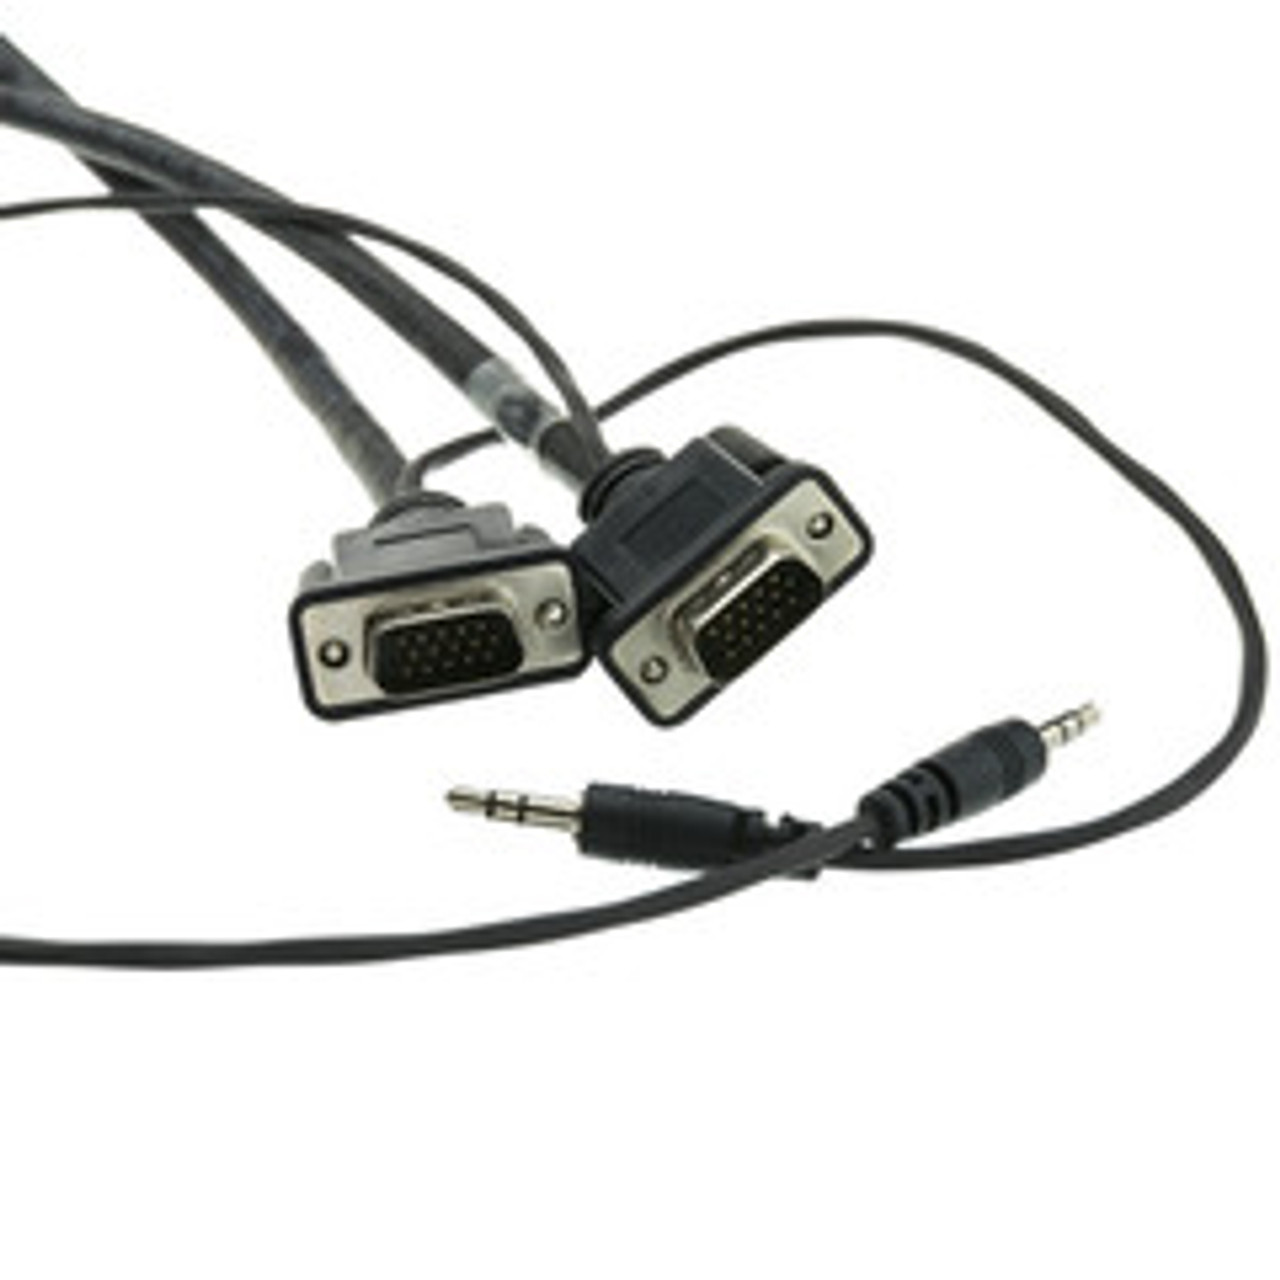 Plenum SVGA Cable w/ Audio, Black, HD15 Male + 3.5mm Male, Coaxial Construction, Shielded, 75 foot